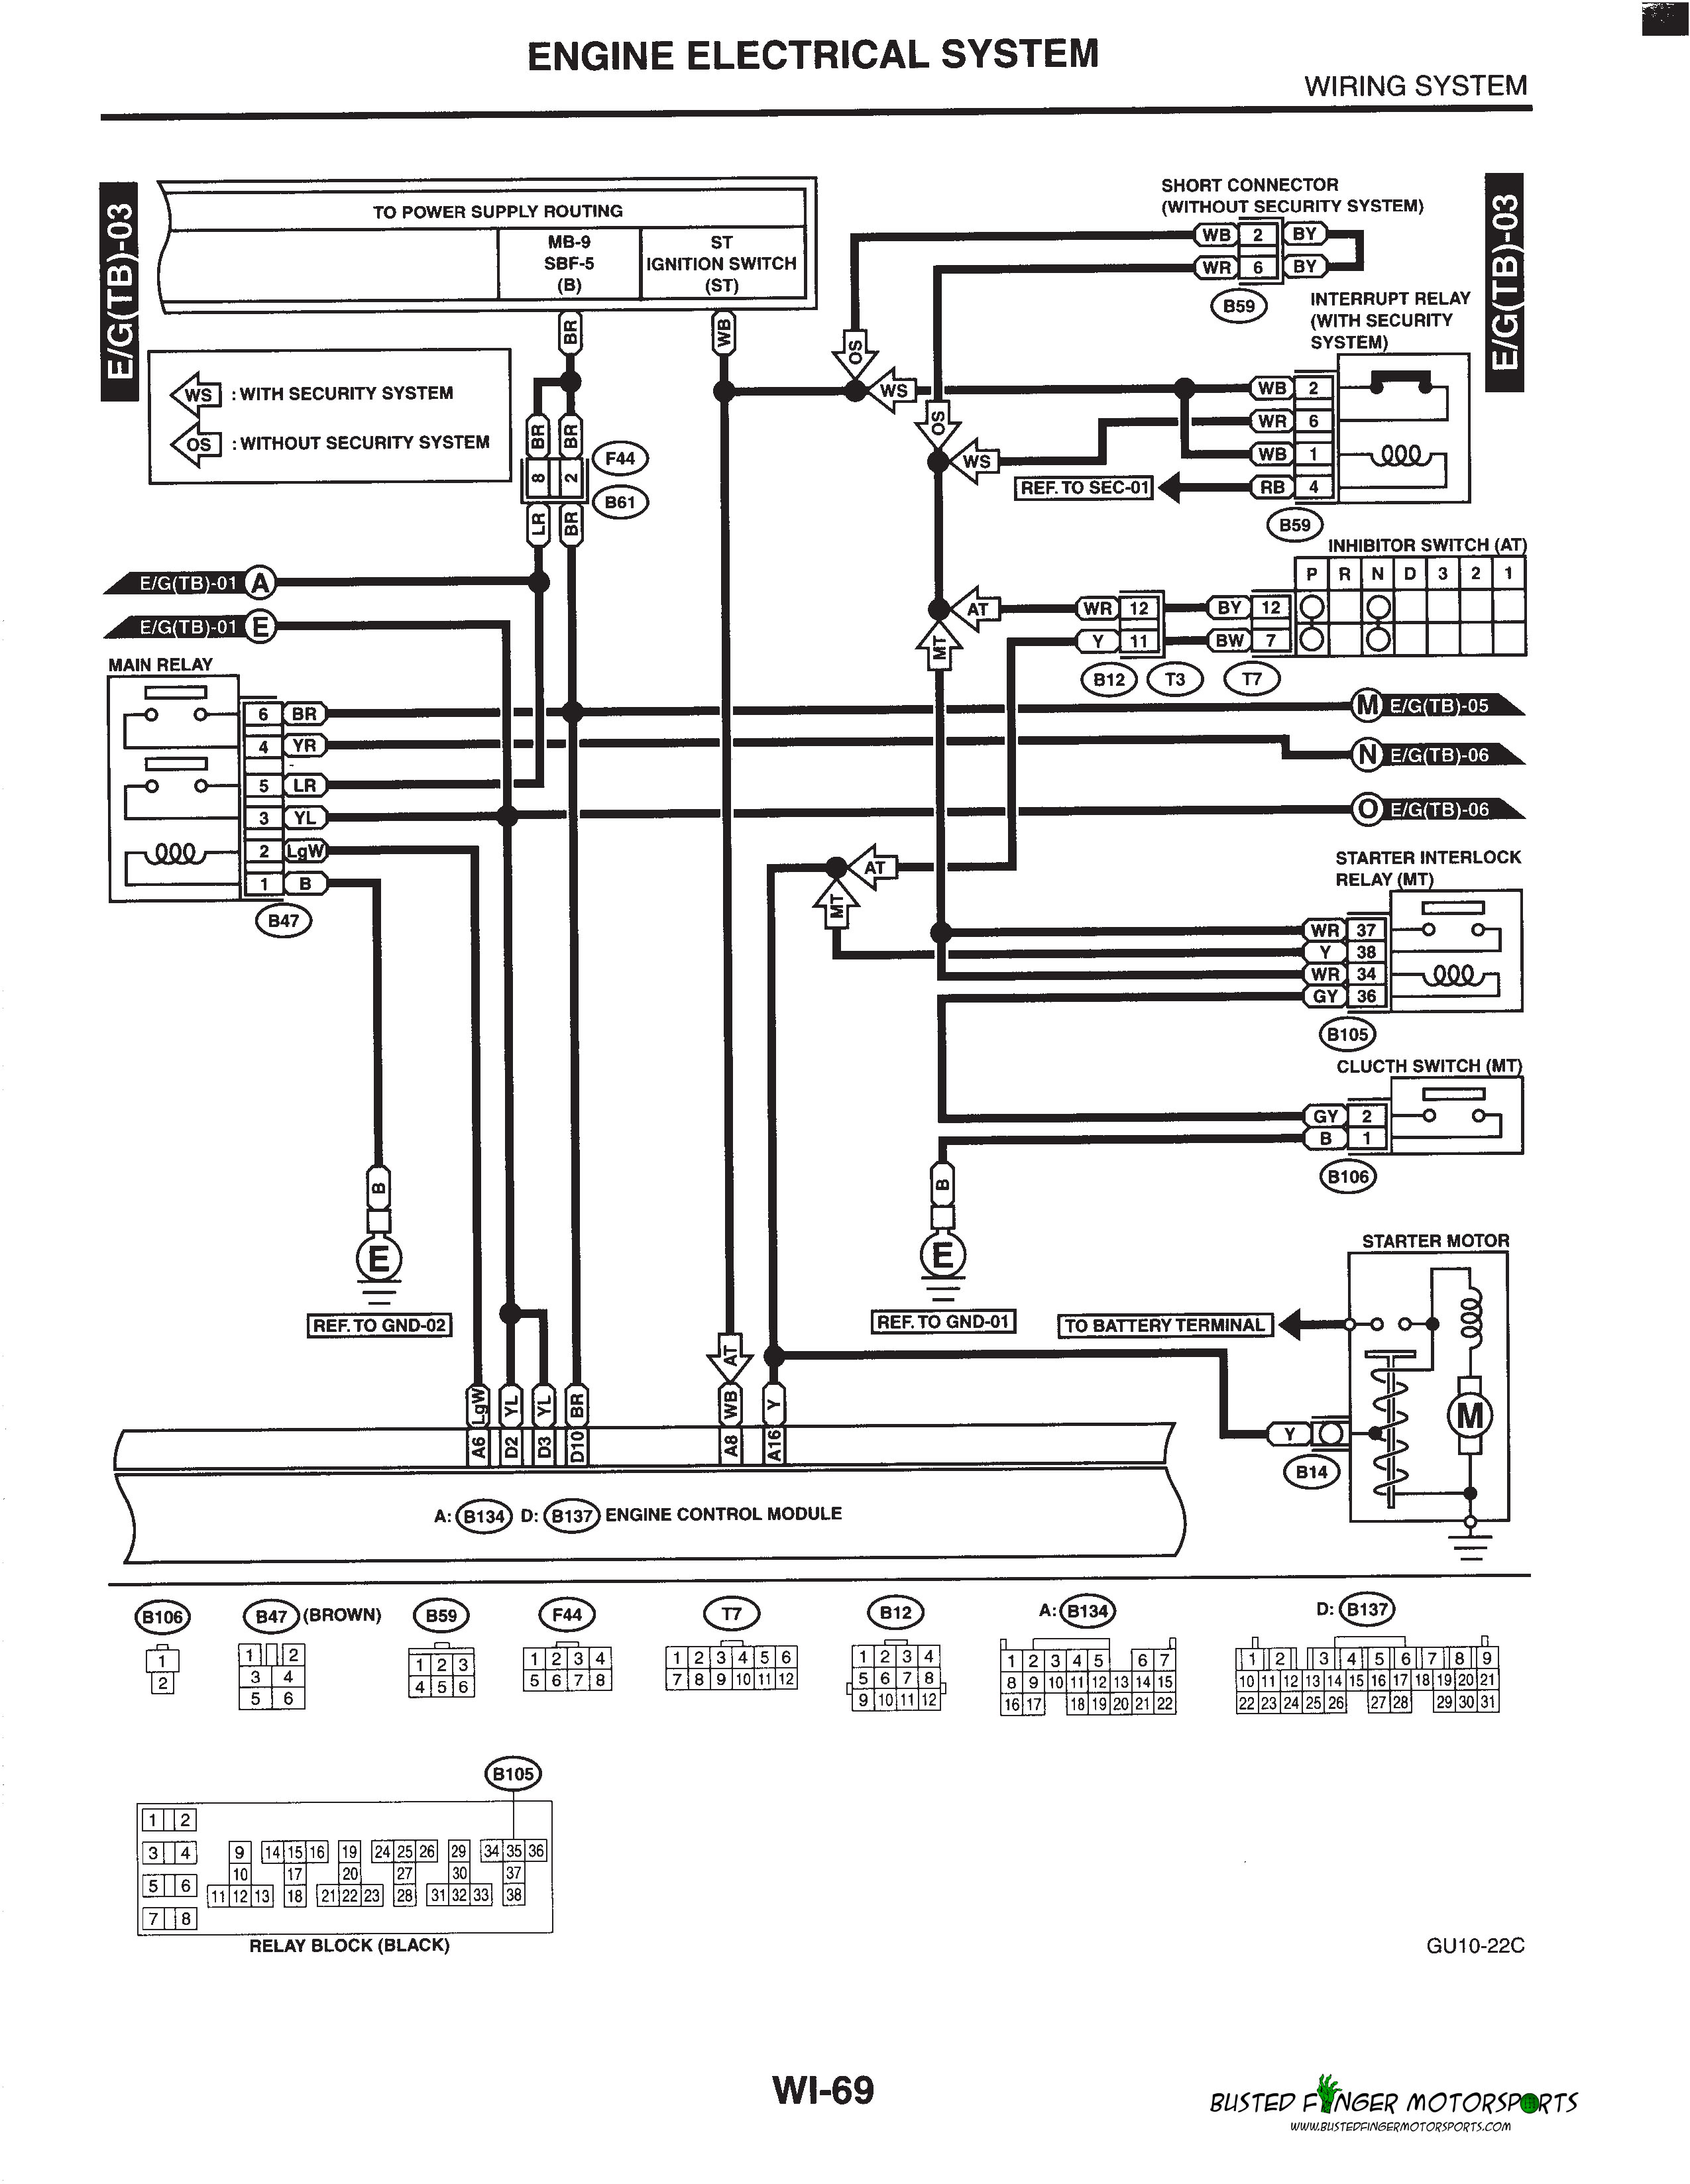 02 wrx ignition wiring diagram   30 wiring diagram images